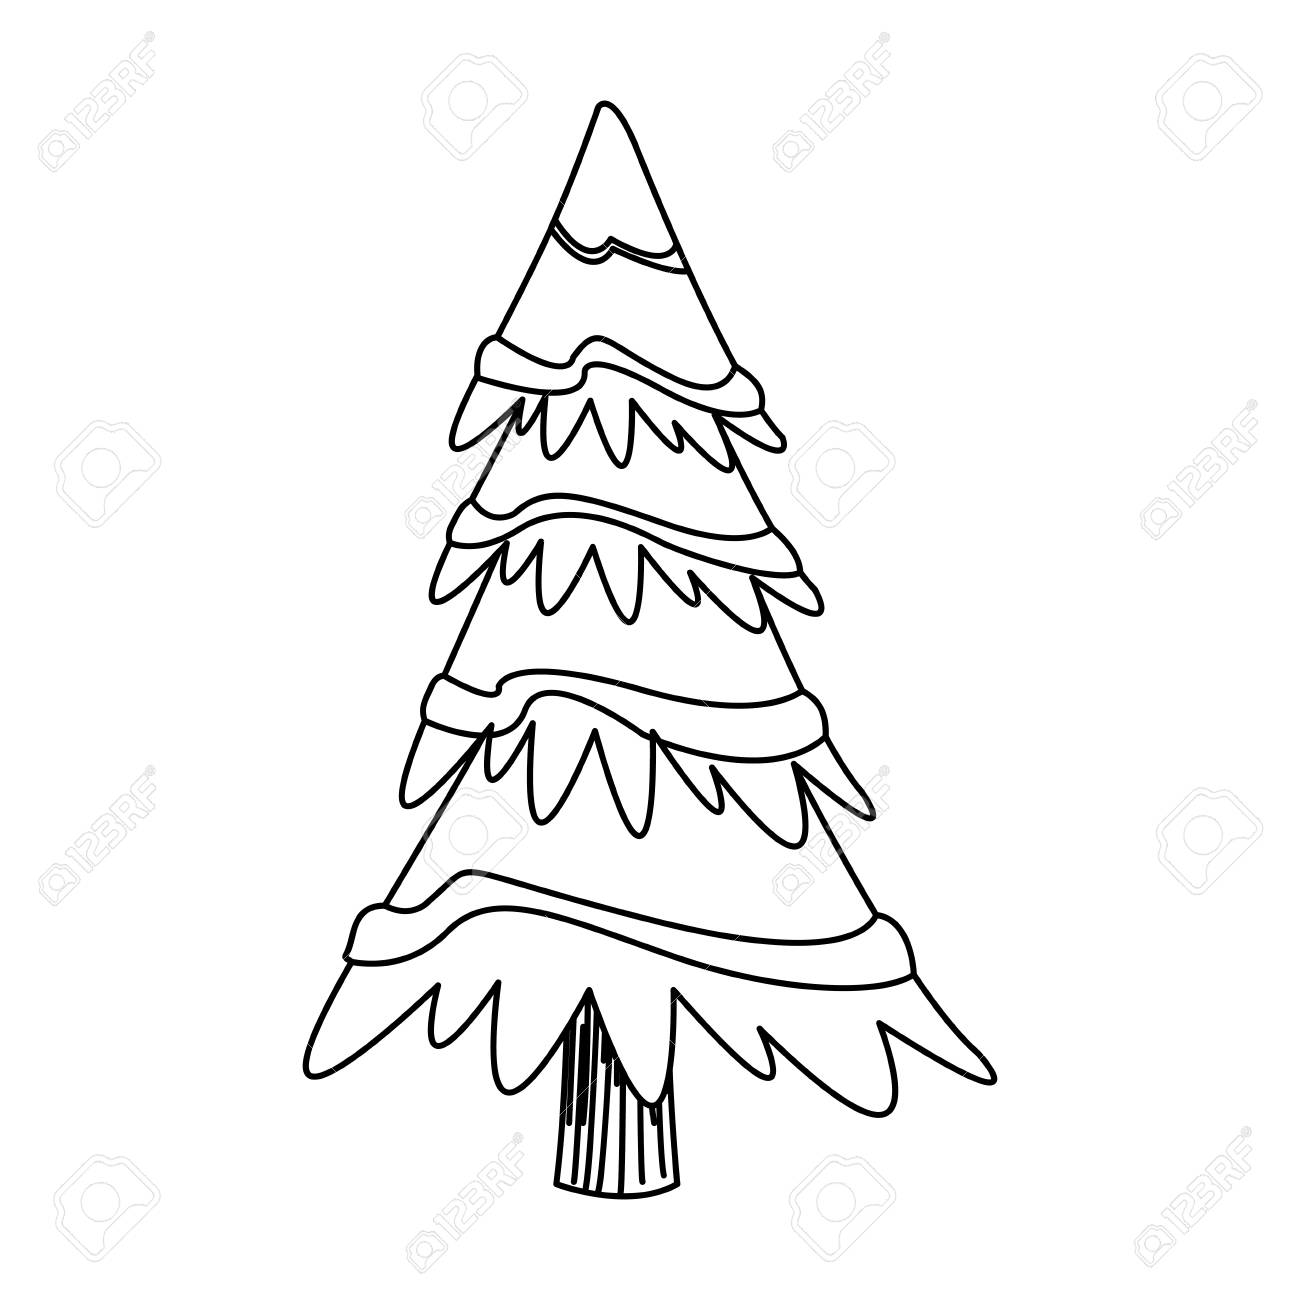 Cartoon Christmas Tree Decoration Celebration Outline Vector Royalty Free Cliparts Vectors And Stock Illustration Image 78542553 600 x 548 png 43 кб. cartoon christmas tree decoration celebration outline vector